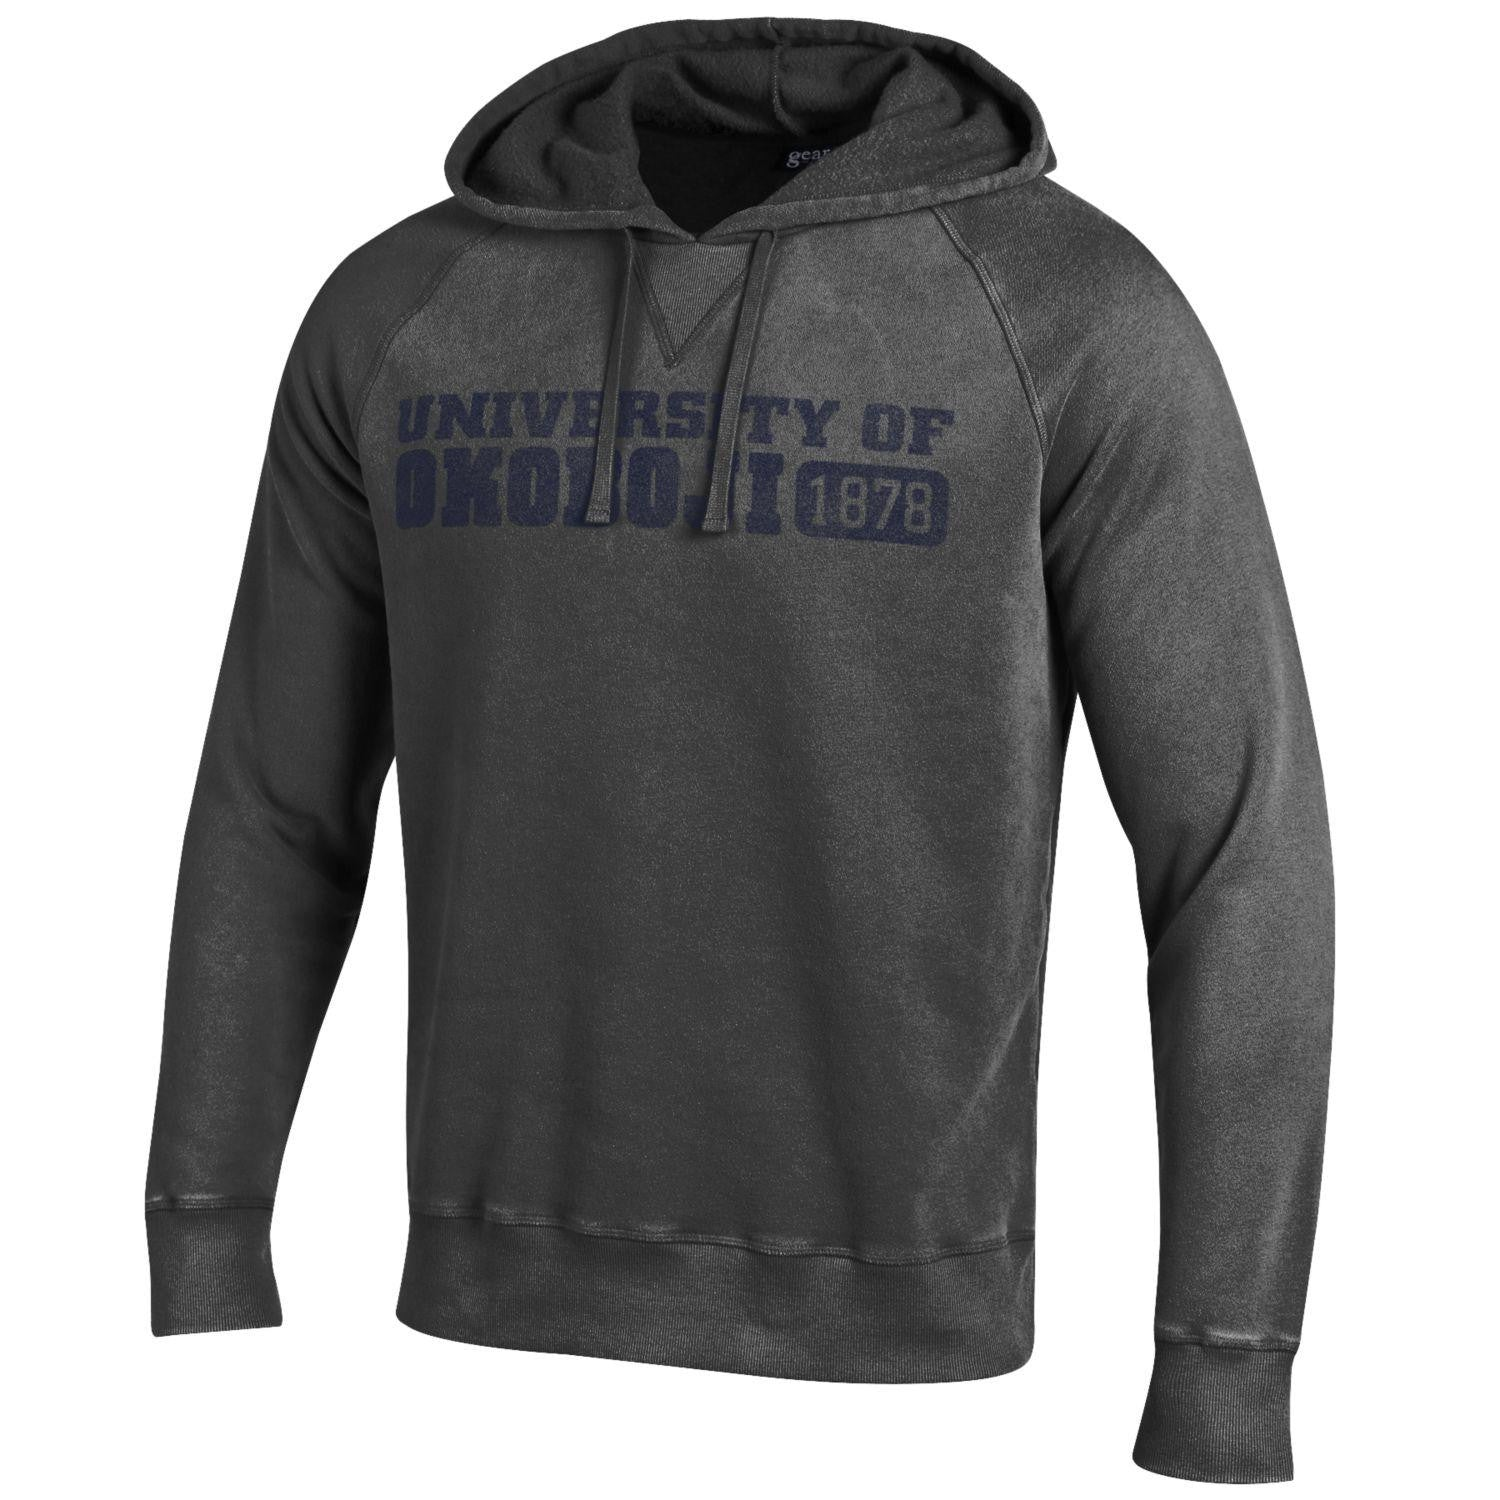 U of Okoboji Outta Town Hood - Charcoal/Granite Heather